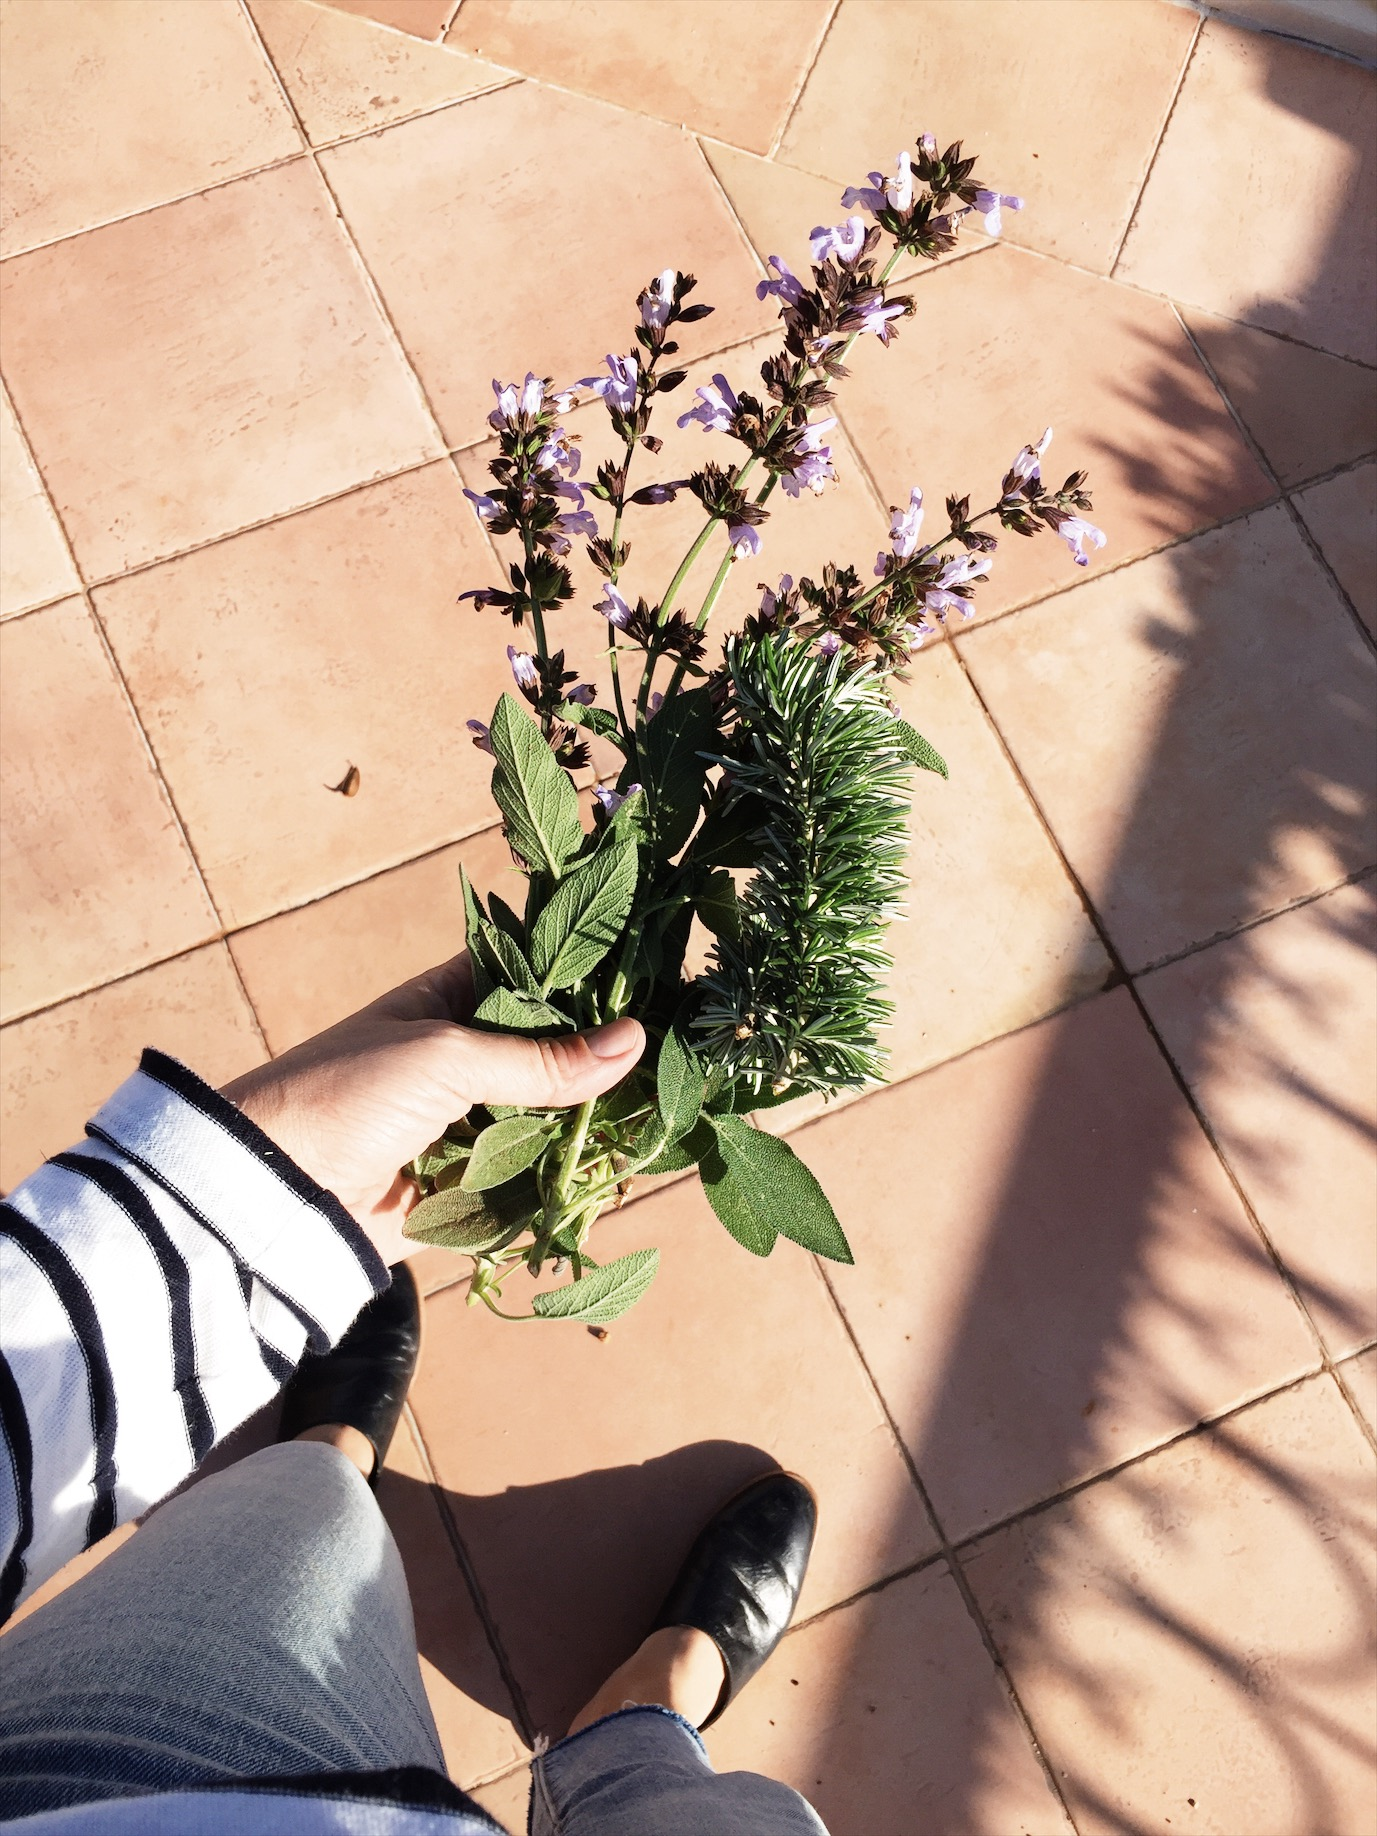 making my own smudge sticks from an organic sage and rosemary herb garden